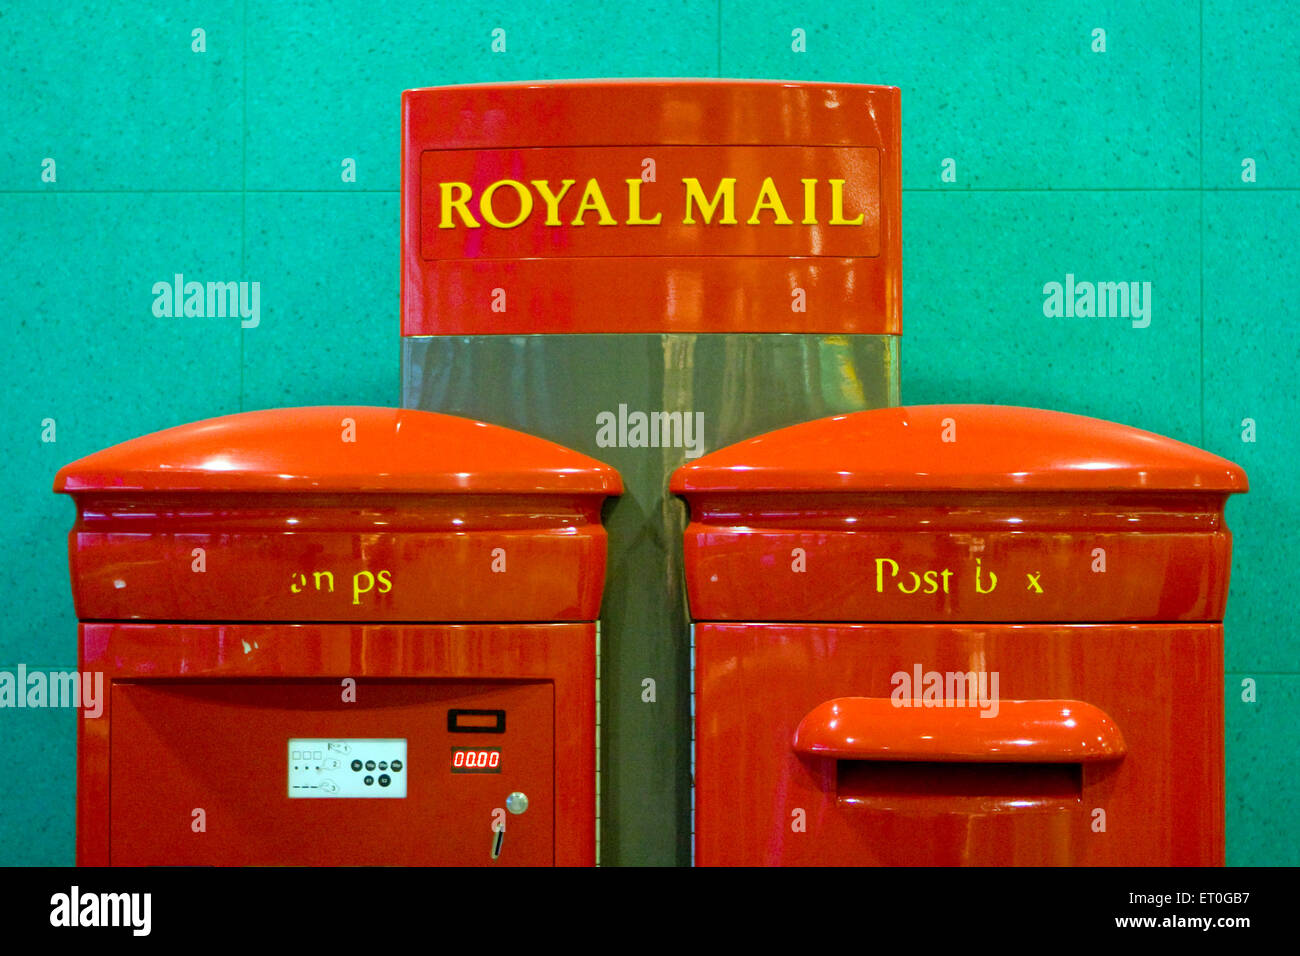 Royal mail stamp vending machine and postbox ; London ; UK United Kingdom England - Stock Image